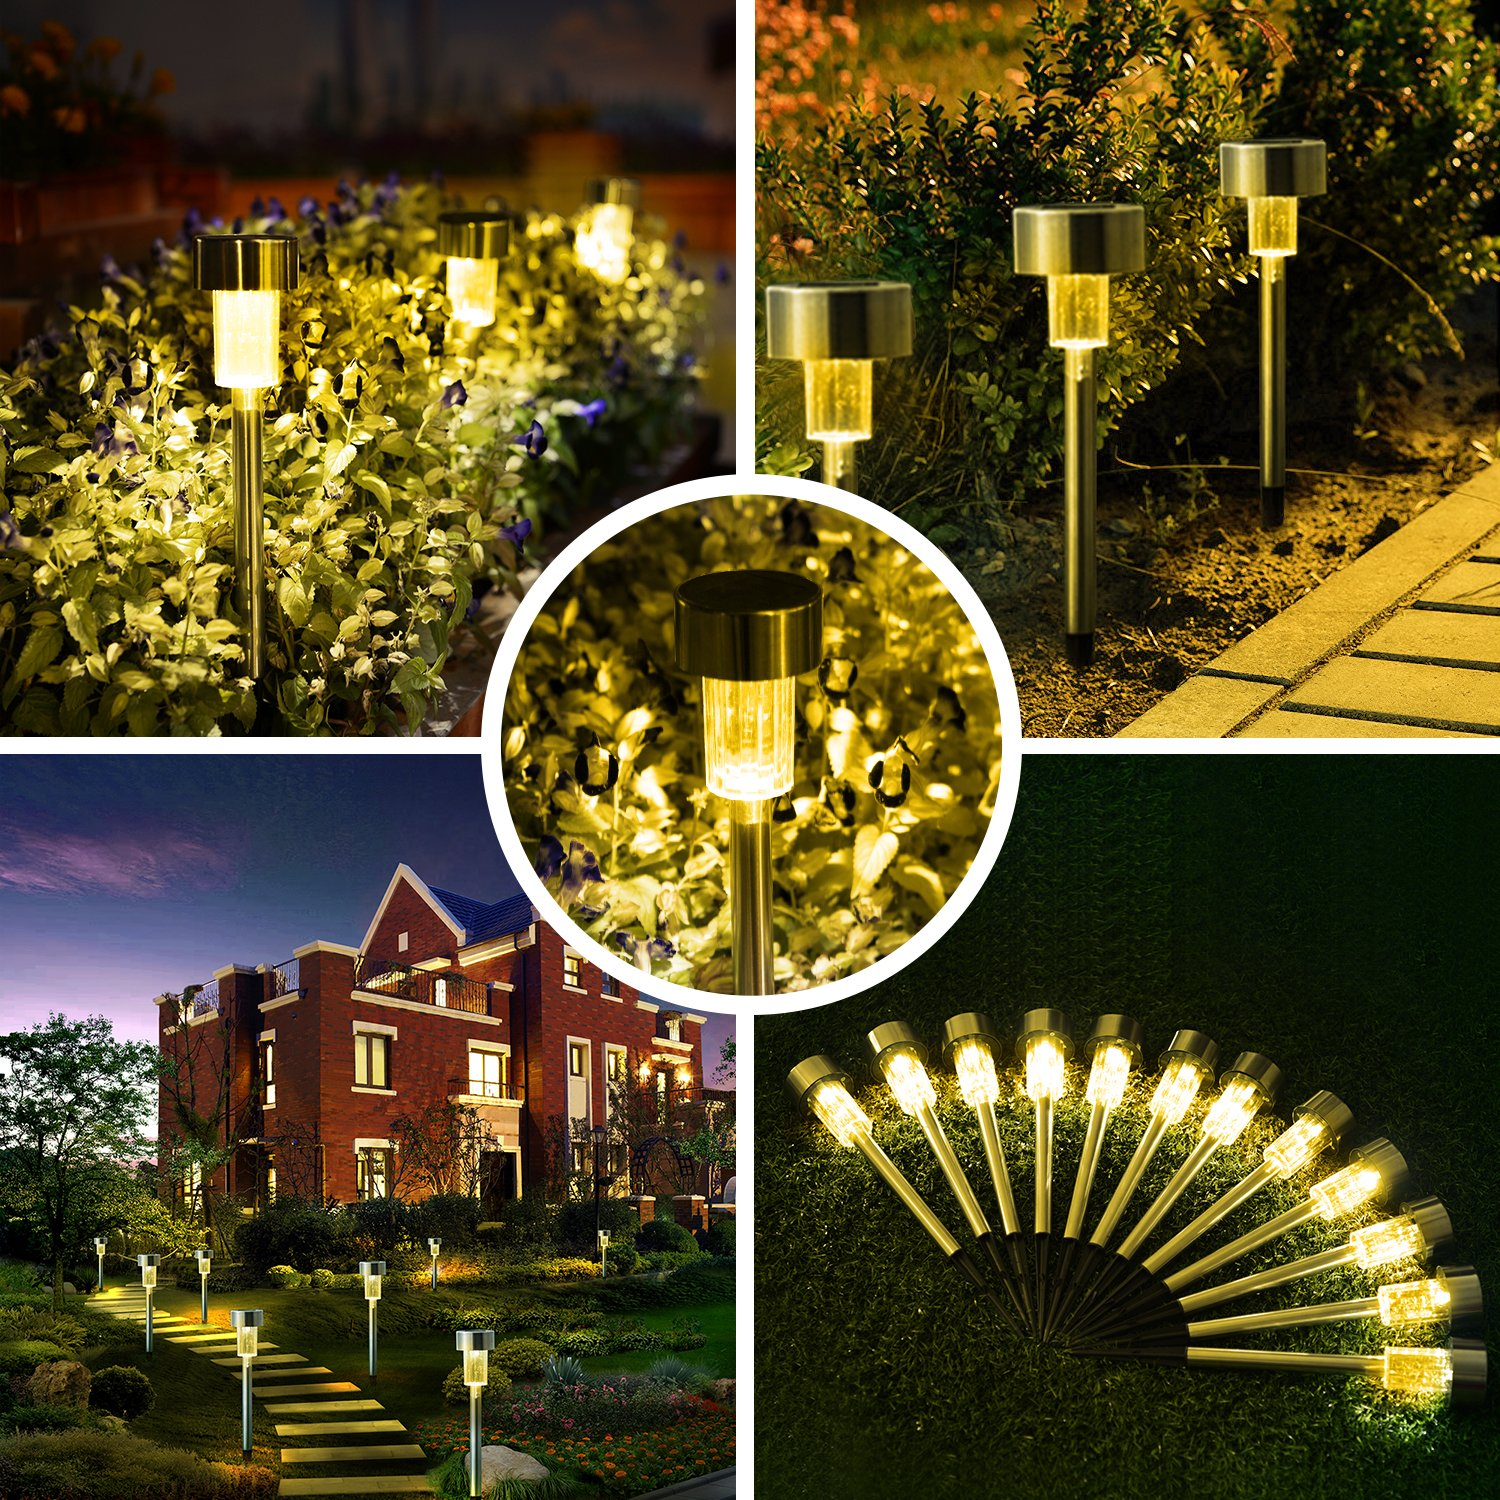 Dumax 12Pack Solar Garden Lights Outdoor, Solar Powered Pathway Lights, Stainless Steel Landscape Lighting for Patio, Lawn, Yard, Driveway, Walkway (Warm White) by Dumax (Image #5)